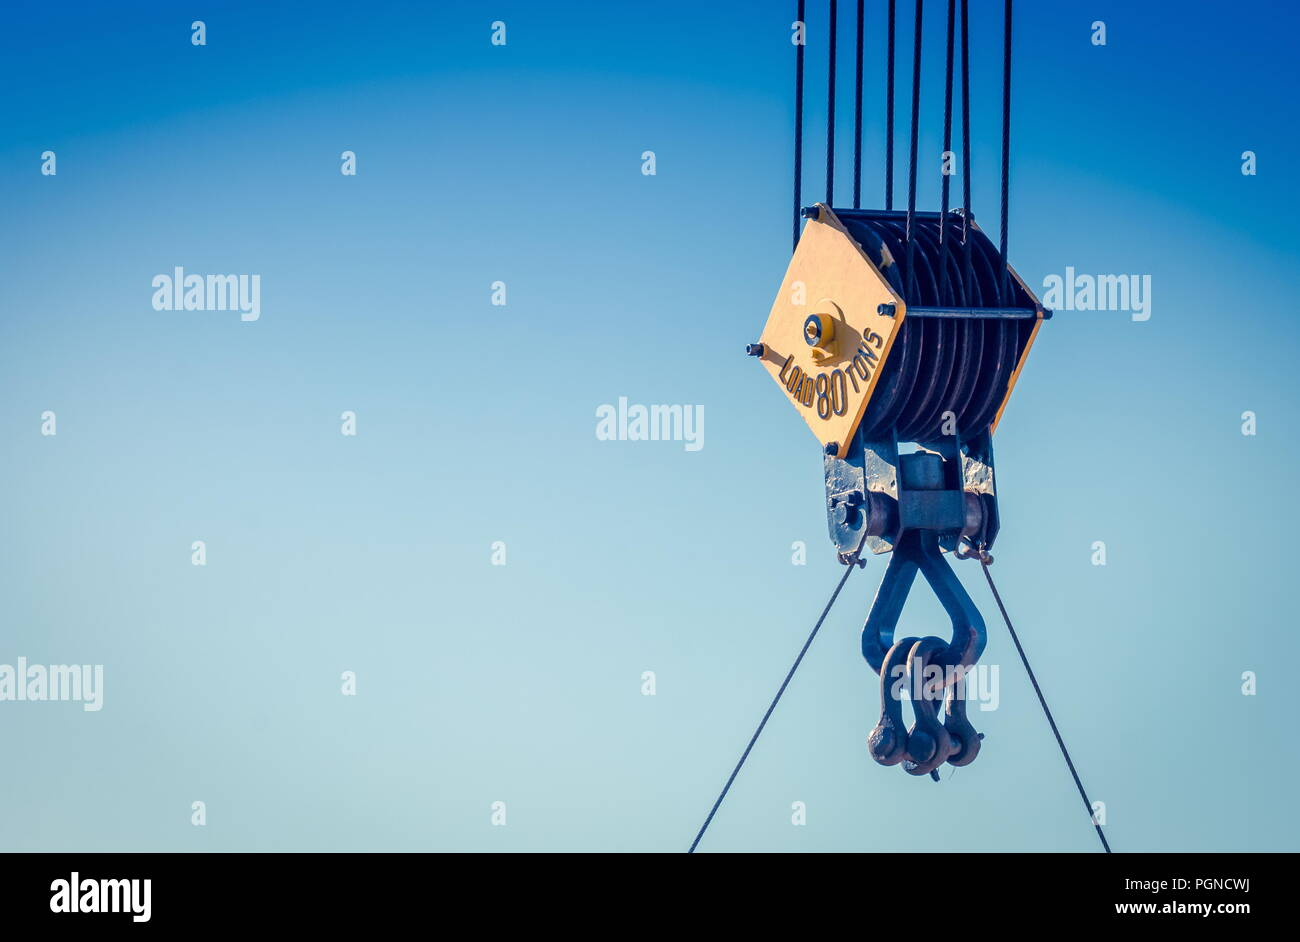 Heavy Rope And Pulley Stock Photos & Heavy Rope And Pulley Stock ...